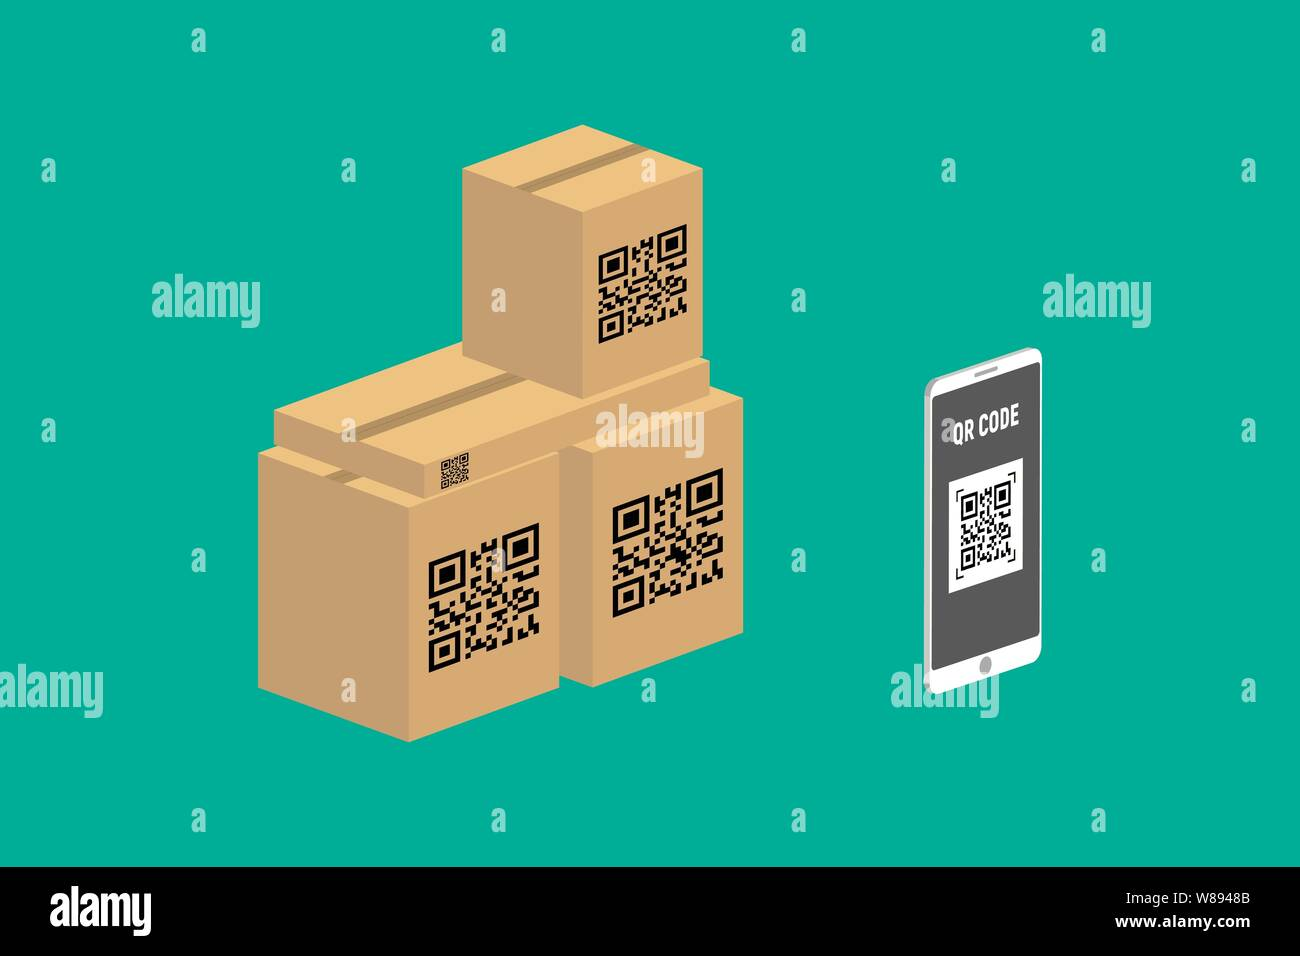 Barcode Verification isometric flat vector concept of qr code, barcode scanning